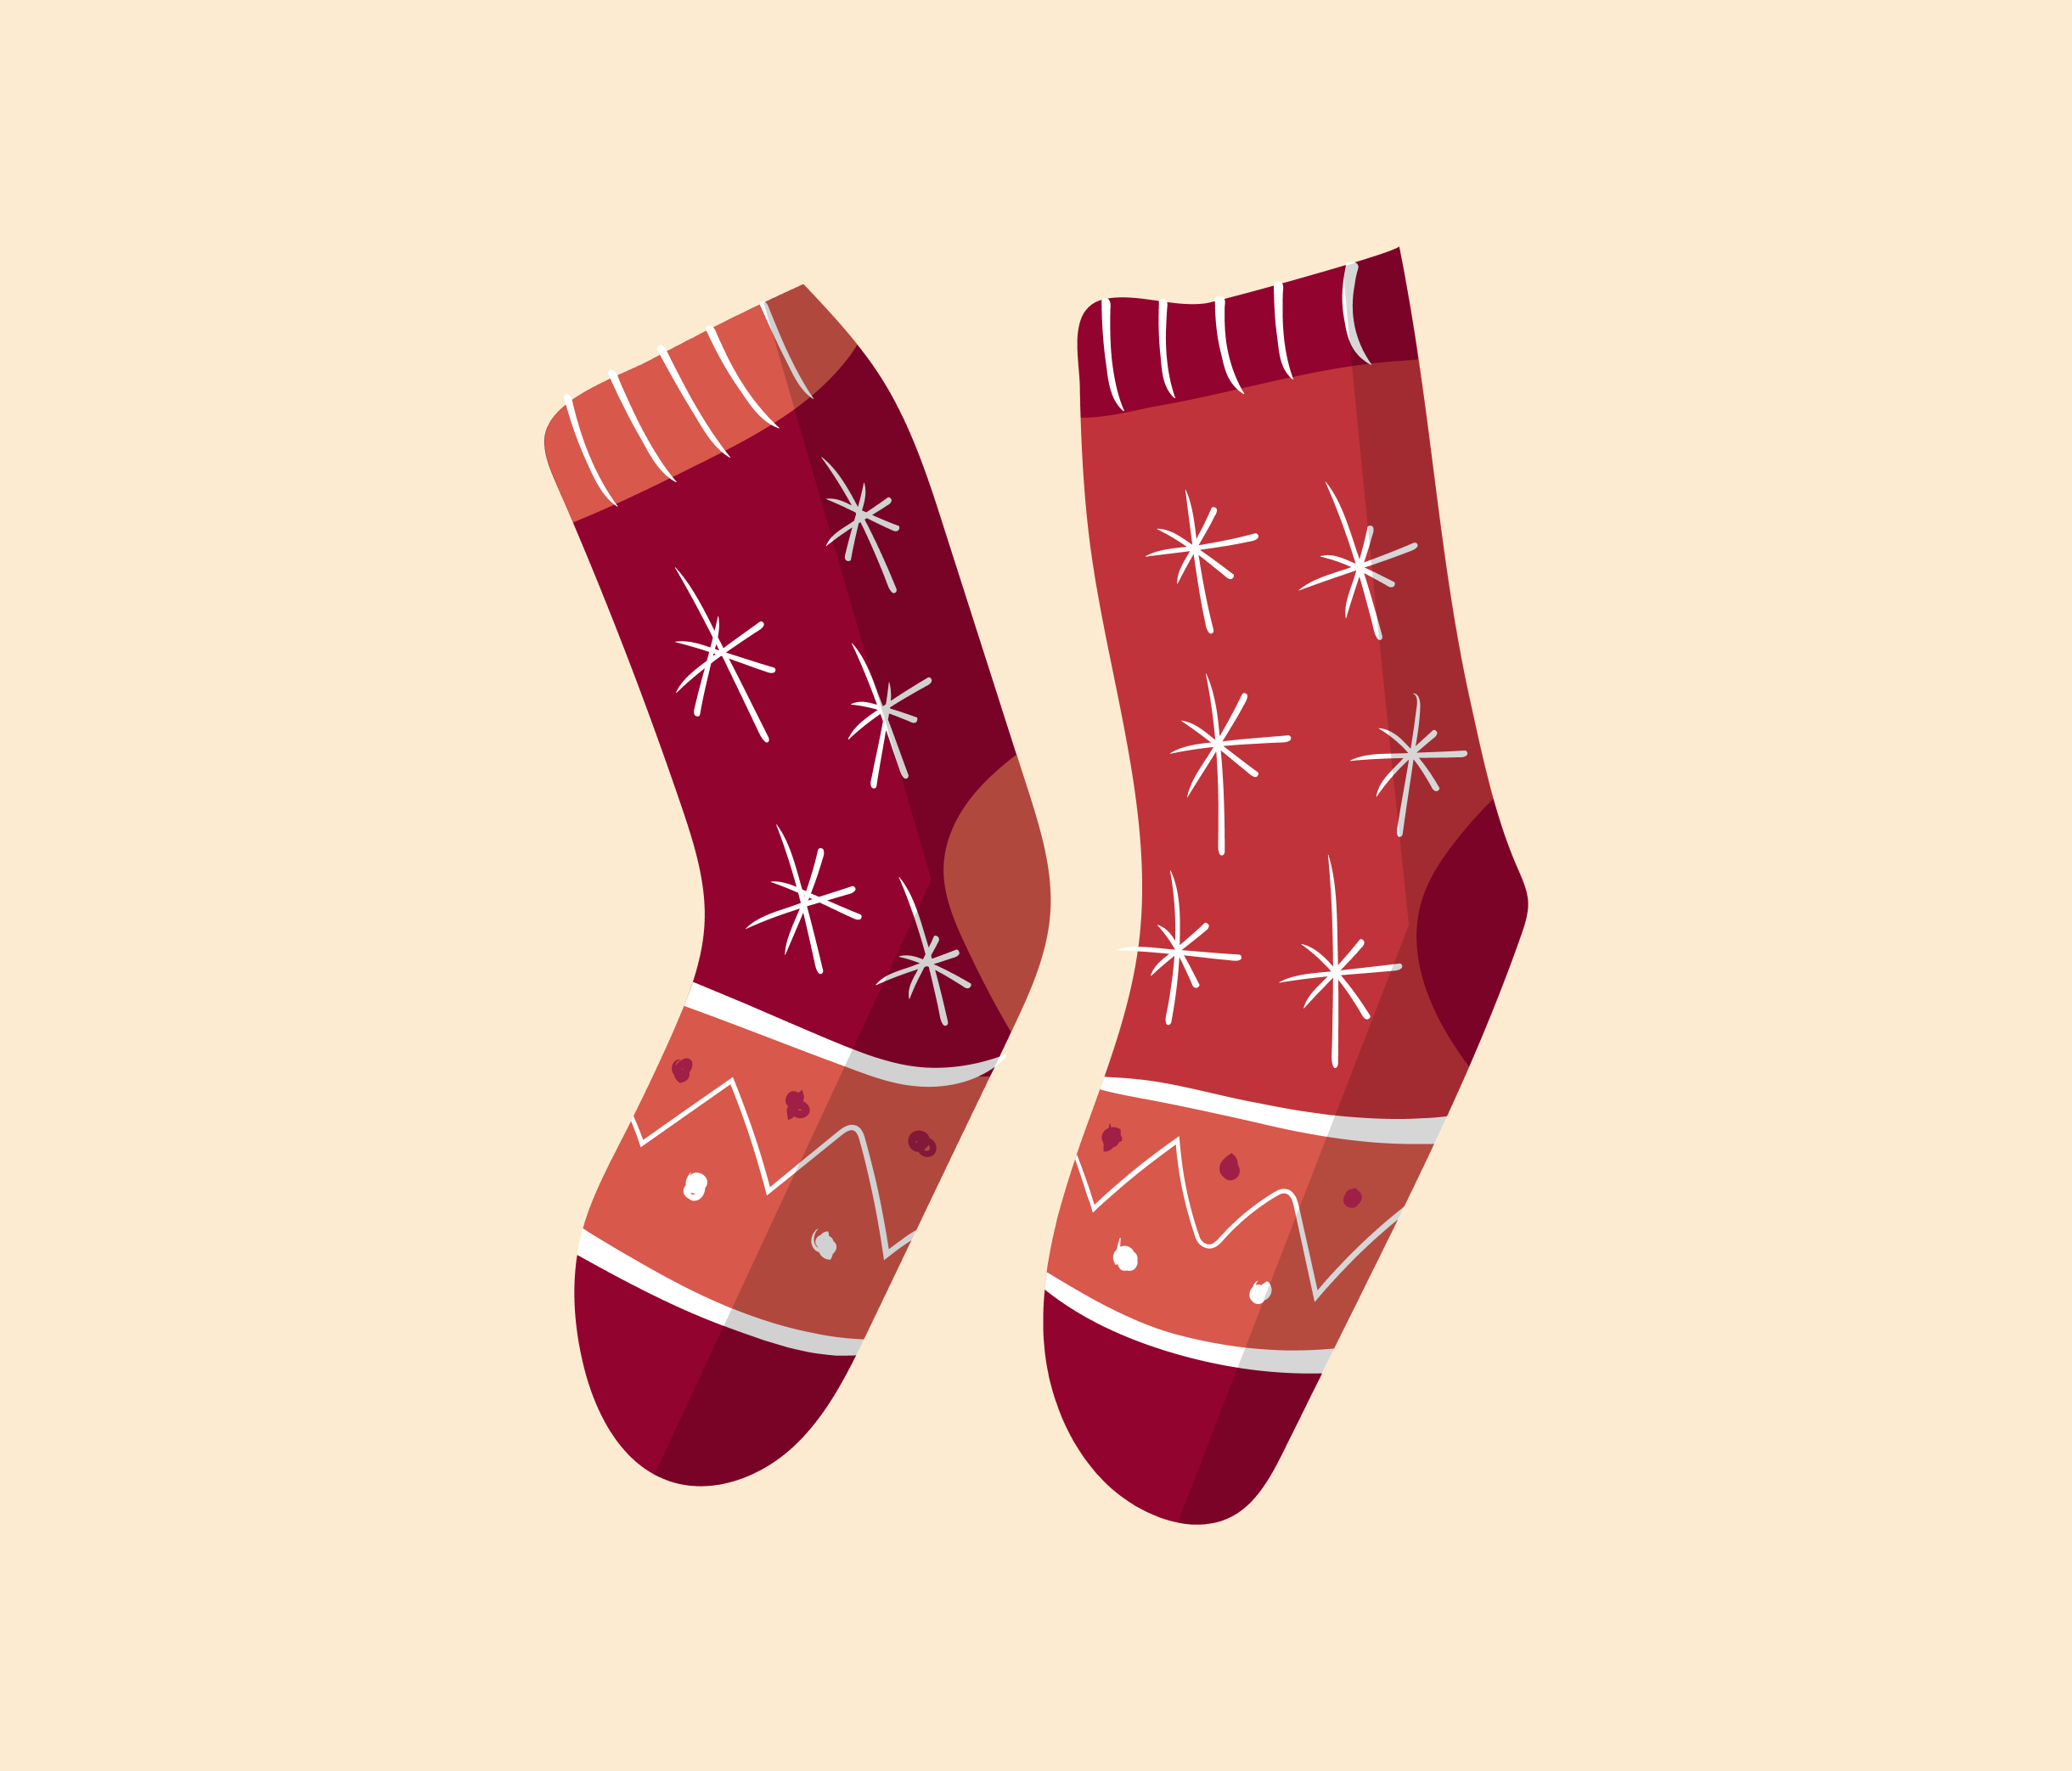 Christmas Socks Graphic Design for PowerPoint